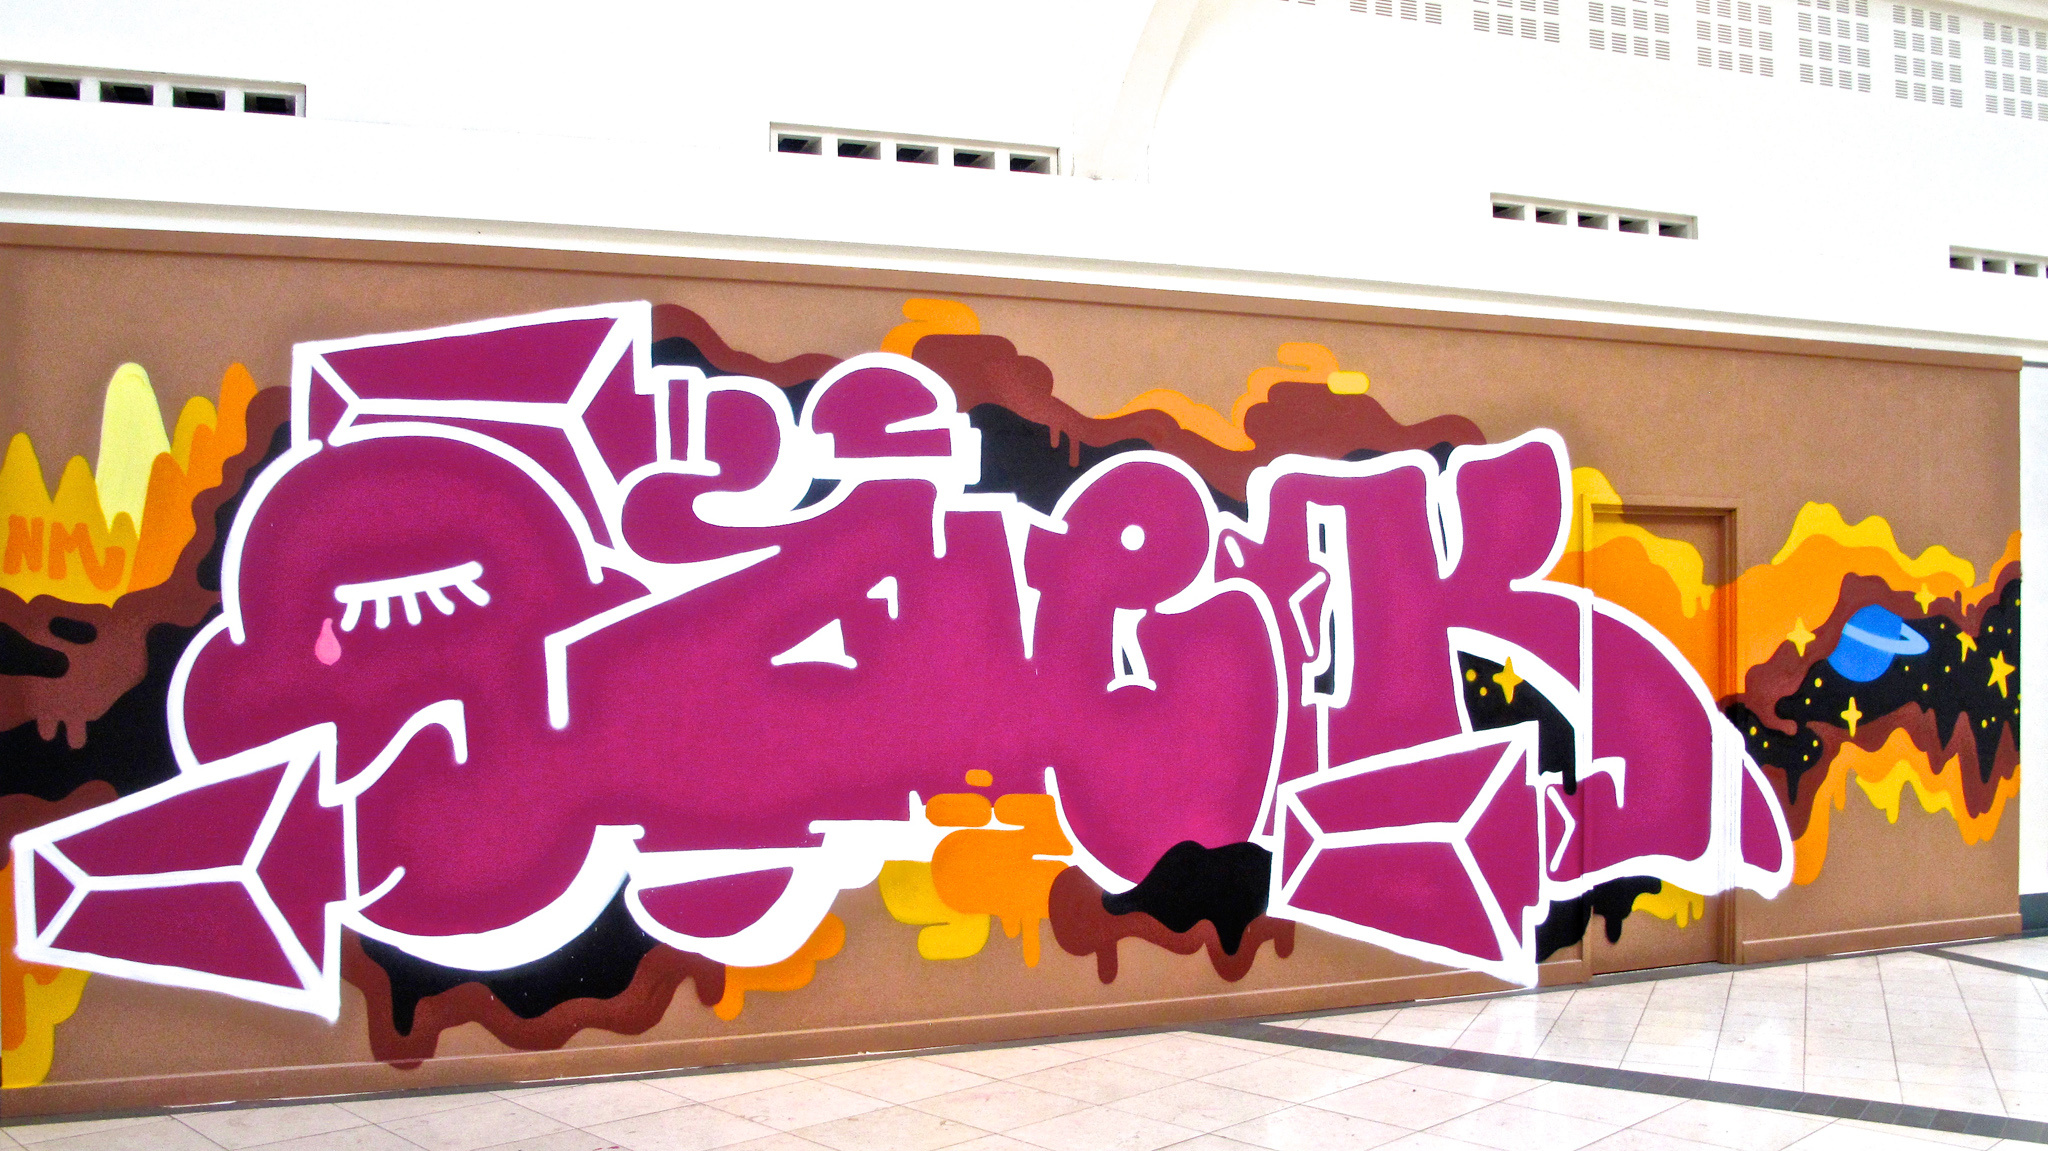 graffiti commission manchester corn exchange